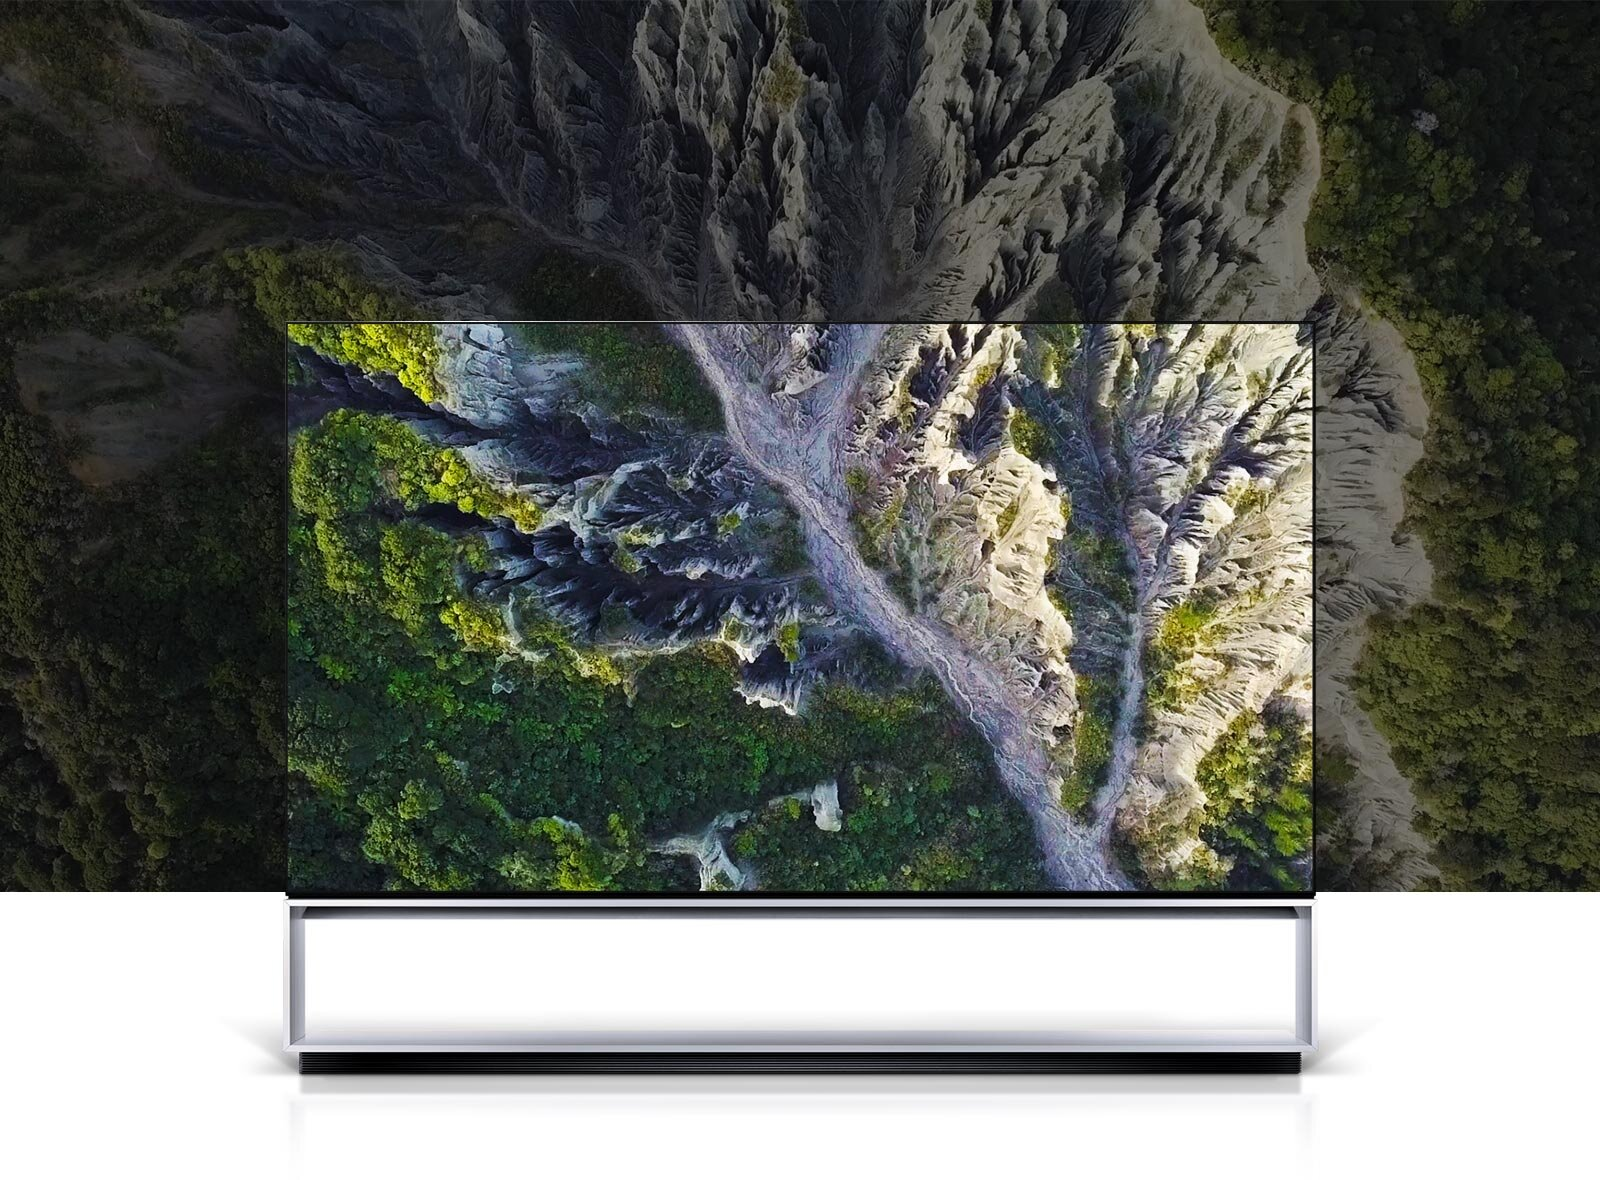 Real 8K OLED - OLED 8K has 33 million self-emitting pixels and 130 million sub-pixels—four times the resolution of 4K. Unlike LEDs, each pixel can be controlled individually to create extremely precise images with more accurate colour, infinite contrast, and perfect blacks.